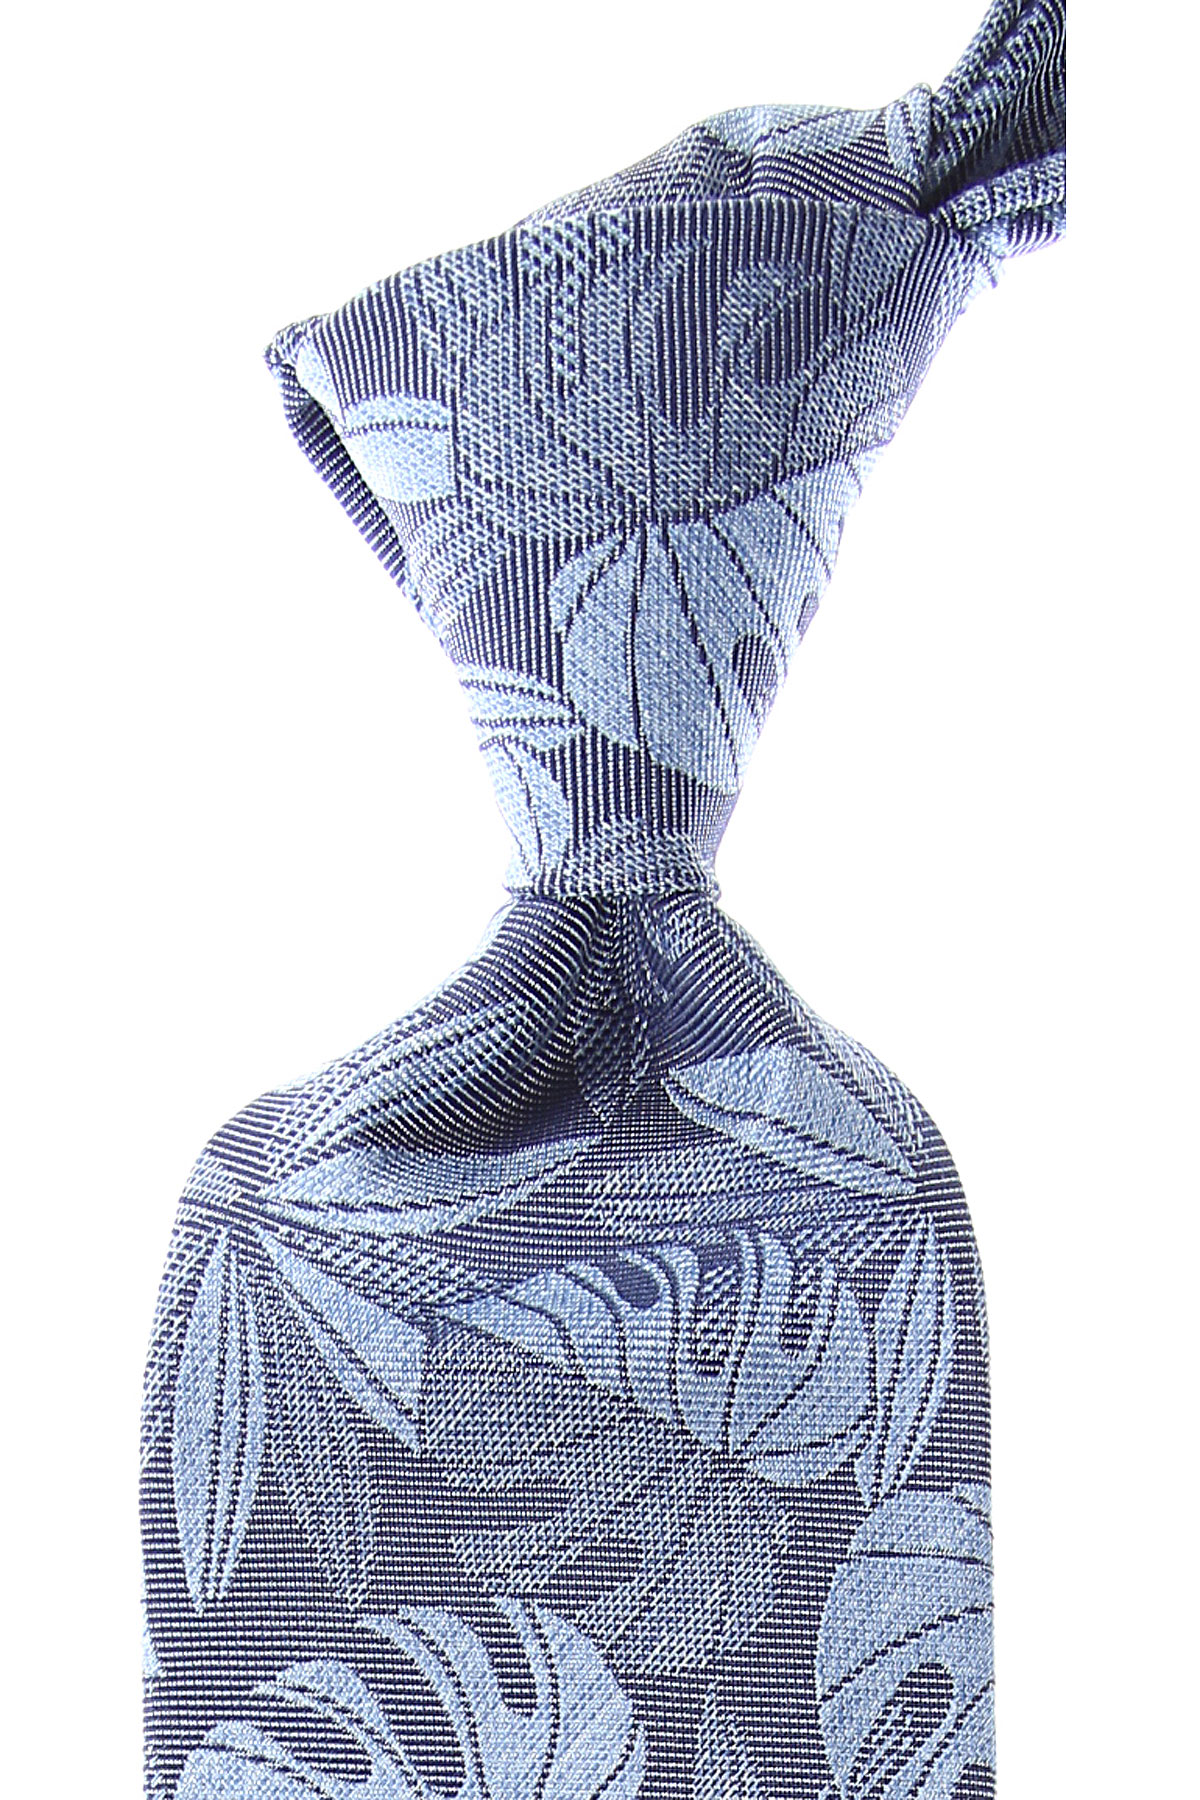 Ermenegildo_Zegna_Ties_On_Sale_Light_Denim_Blue_Silk_2019